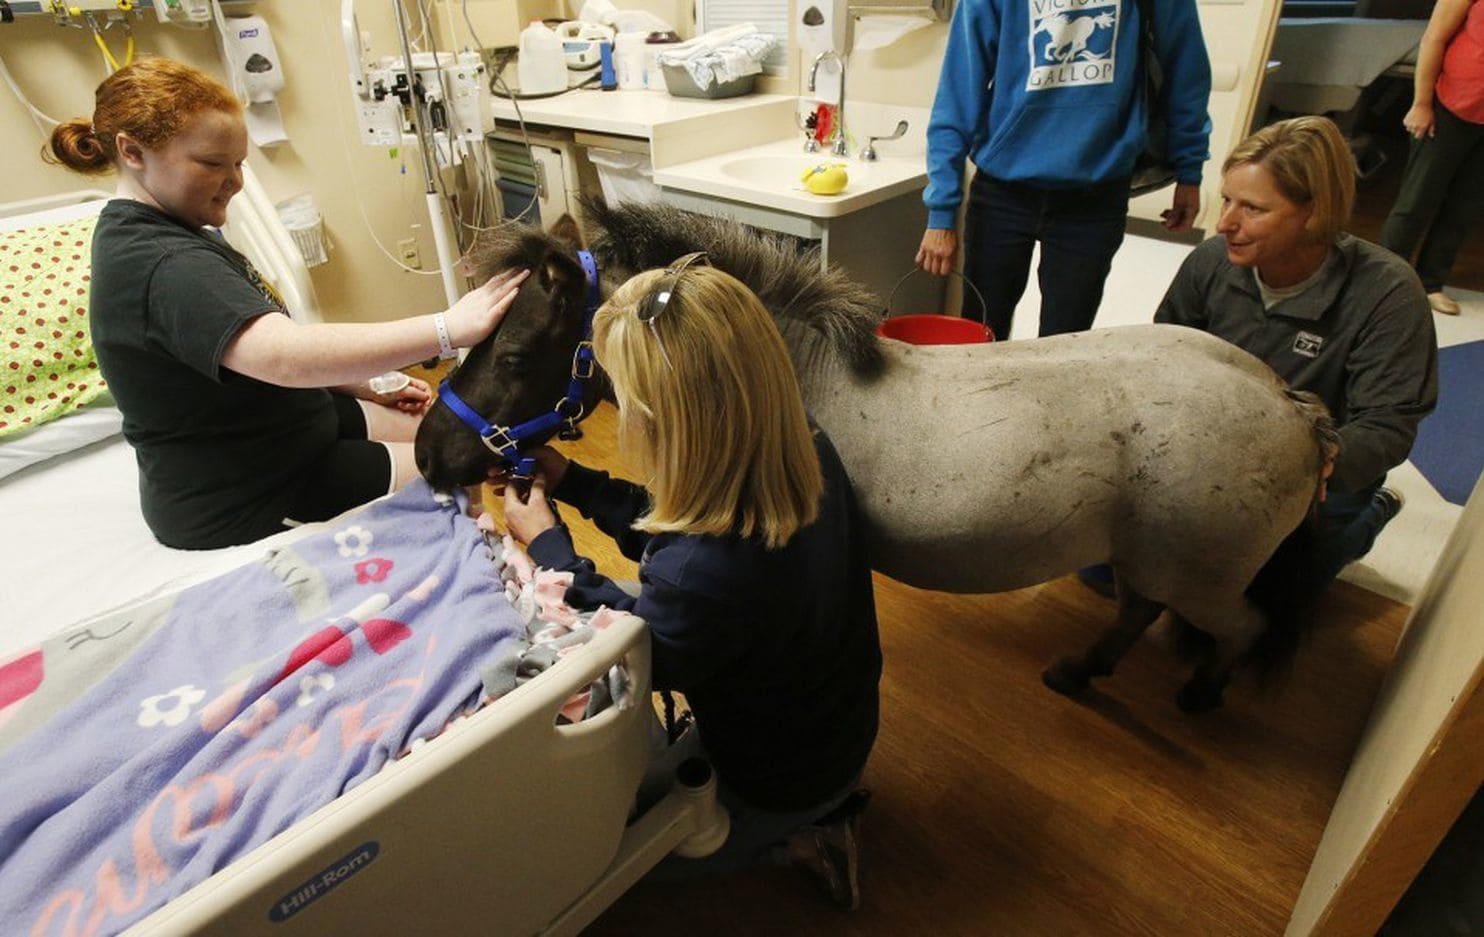 Miniature horses are welcome as service animals, but monkeys are a maybe, US airline regulators say - Washington Post